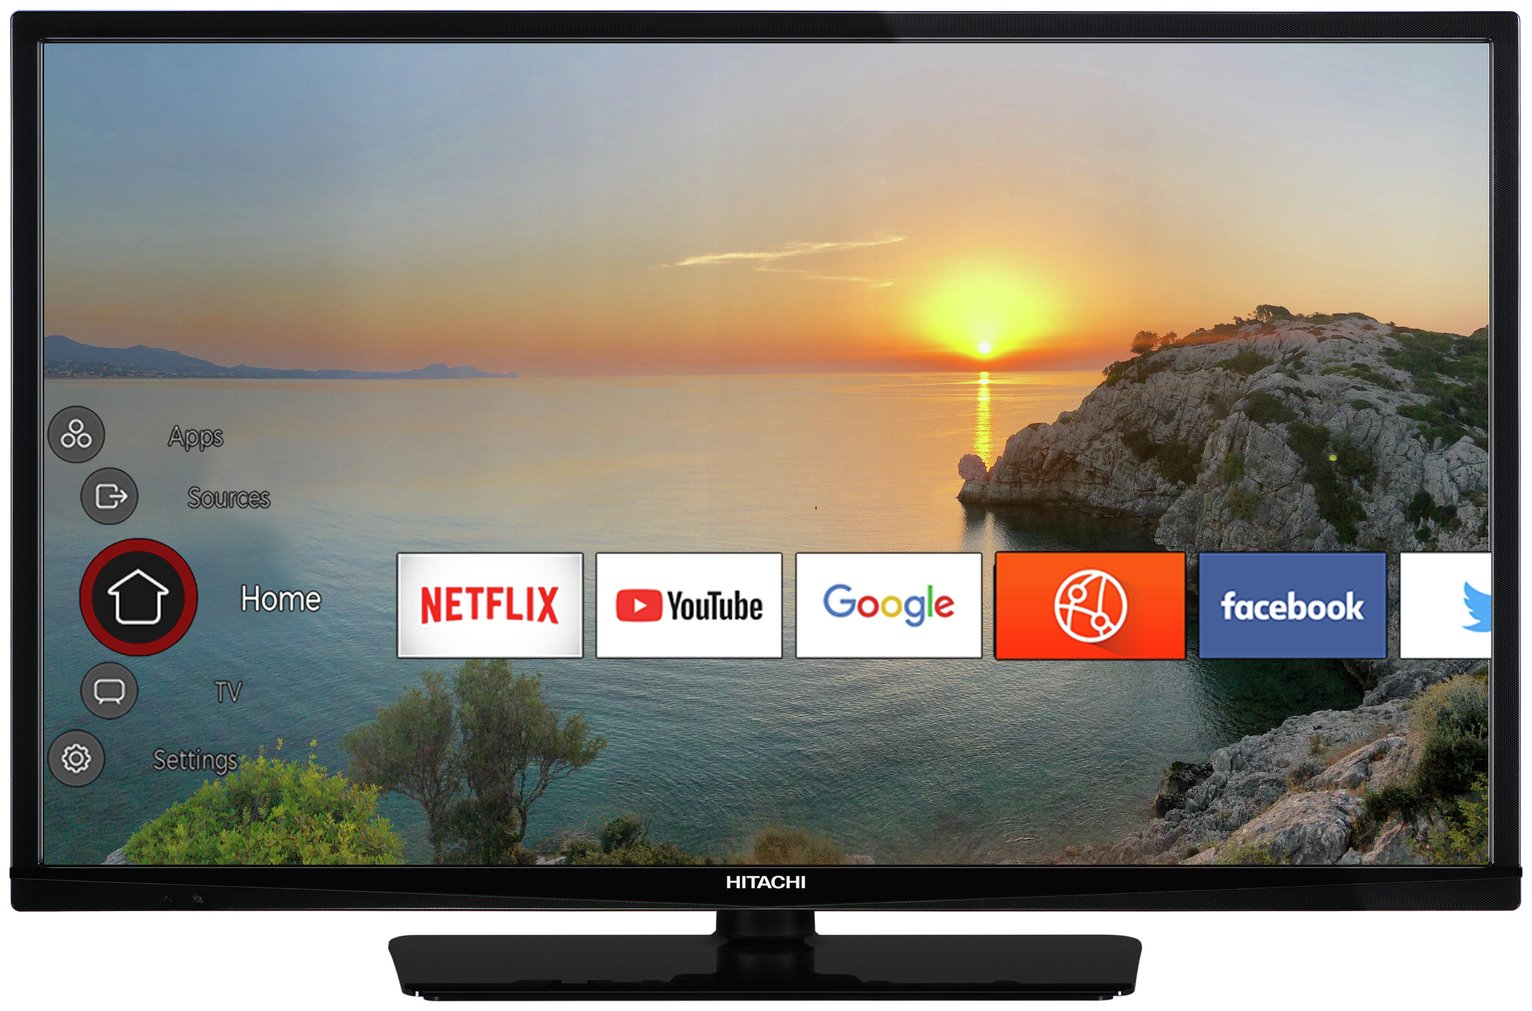 Hitachi 32 Inch Smart HD Ready TV / DVD Combi from Hitachi